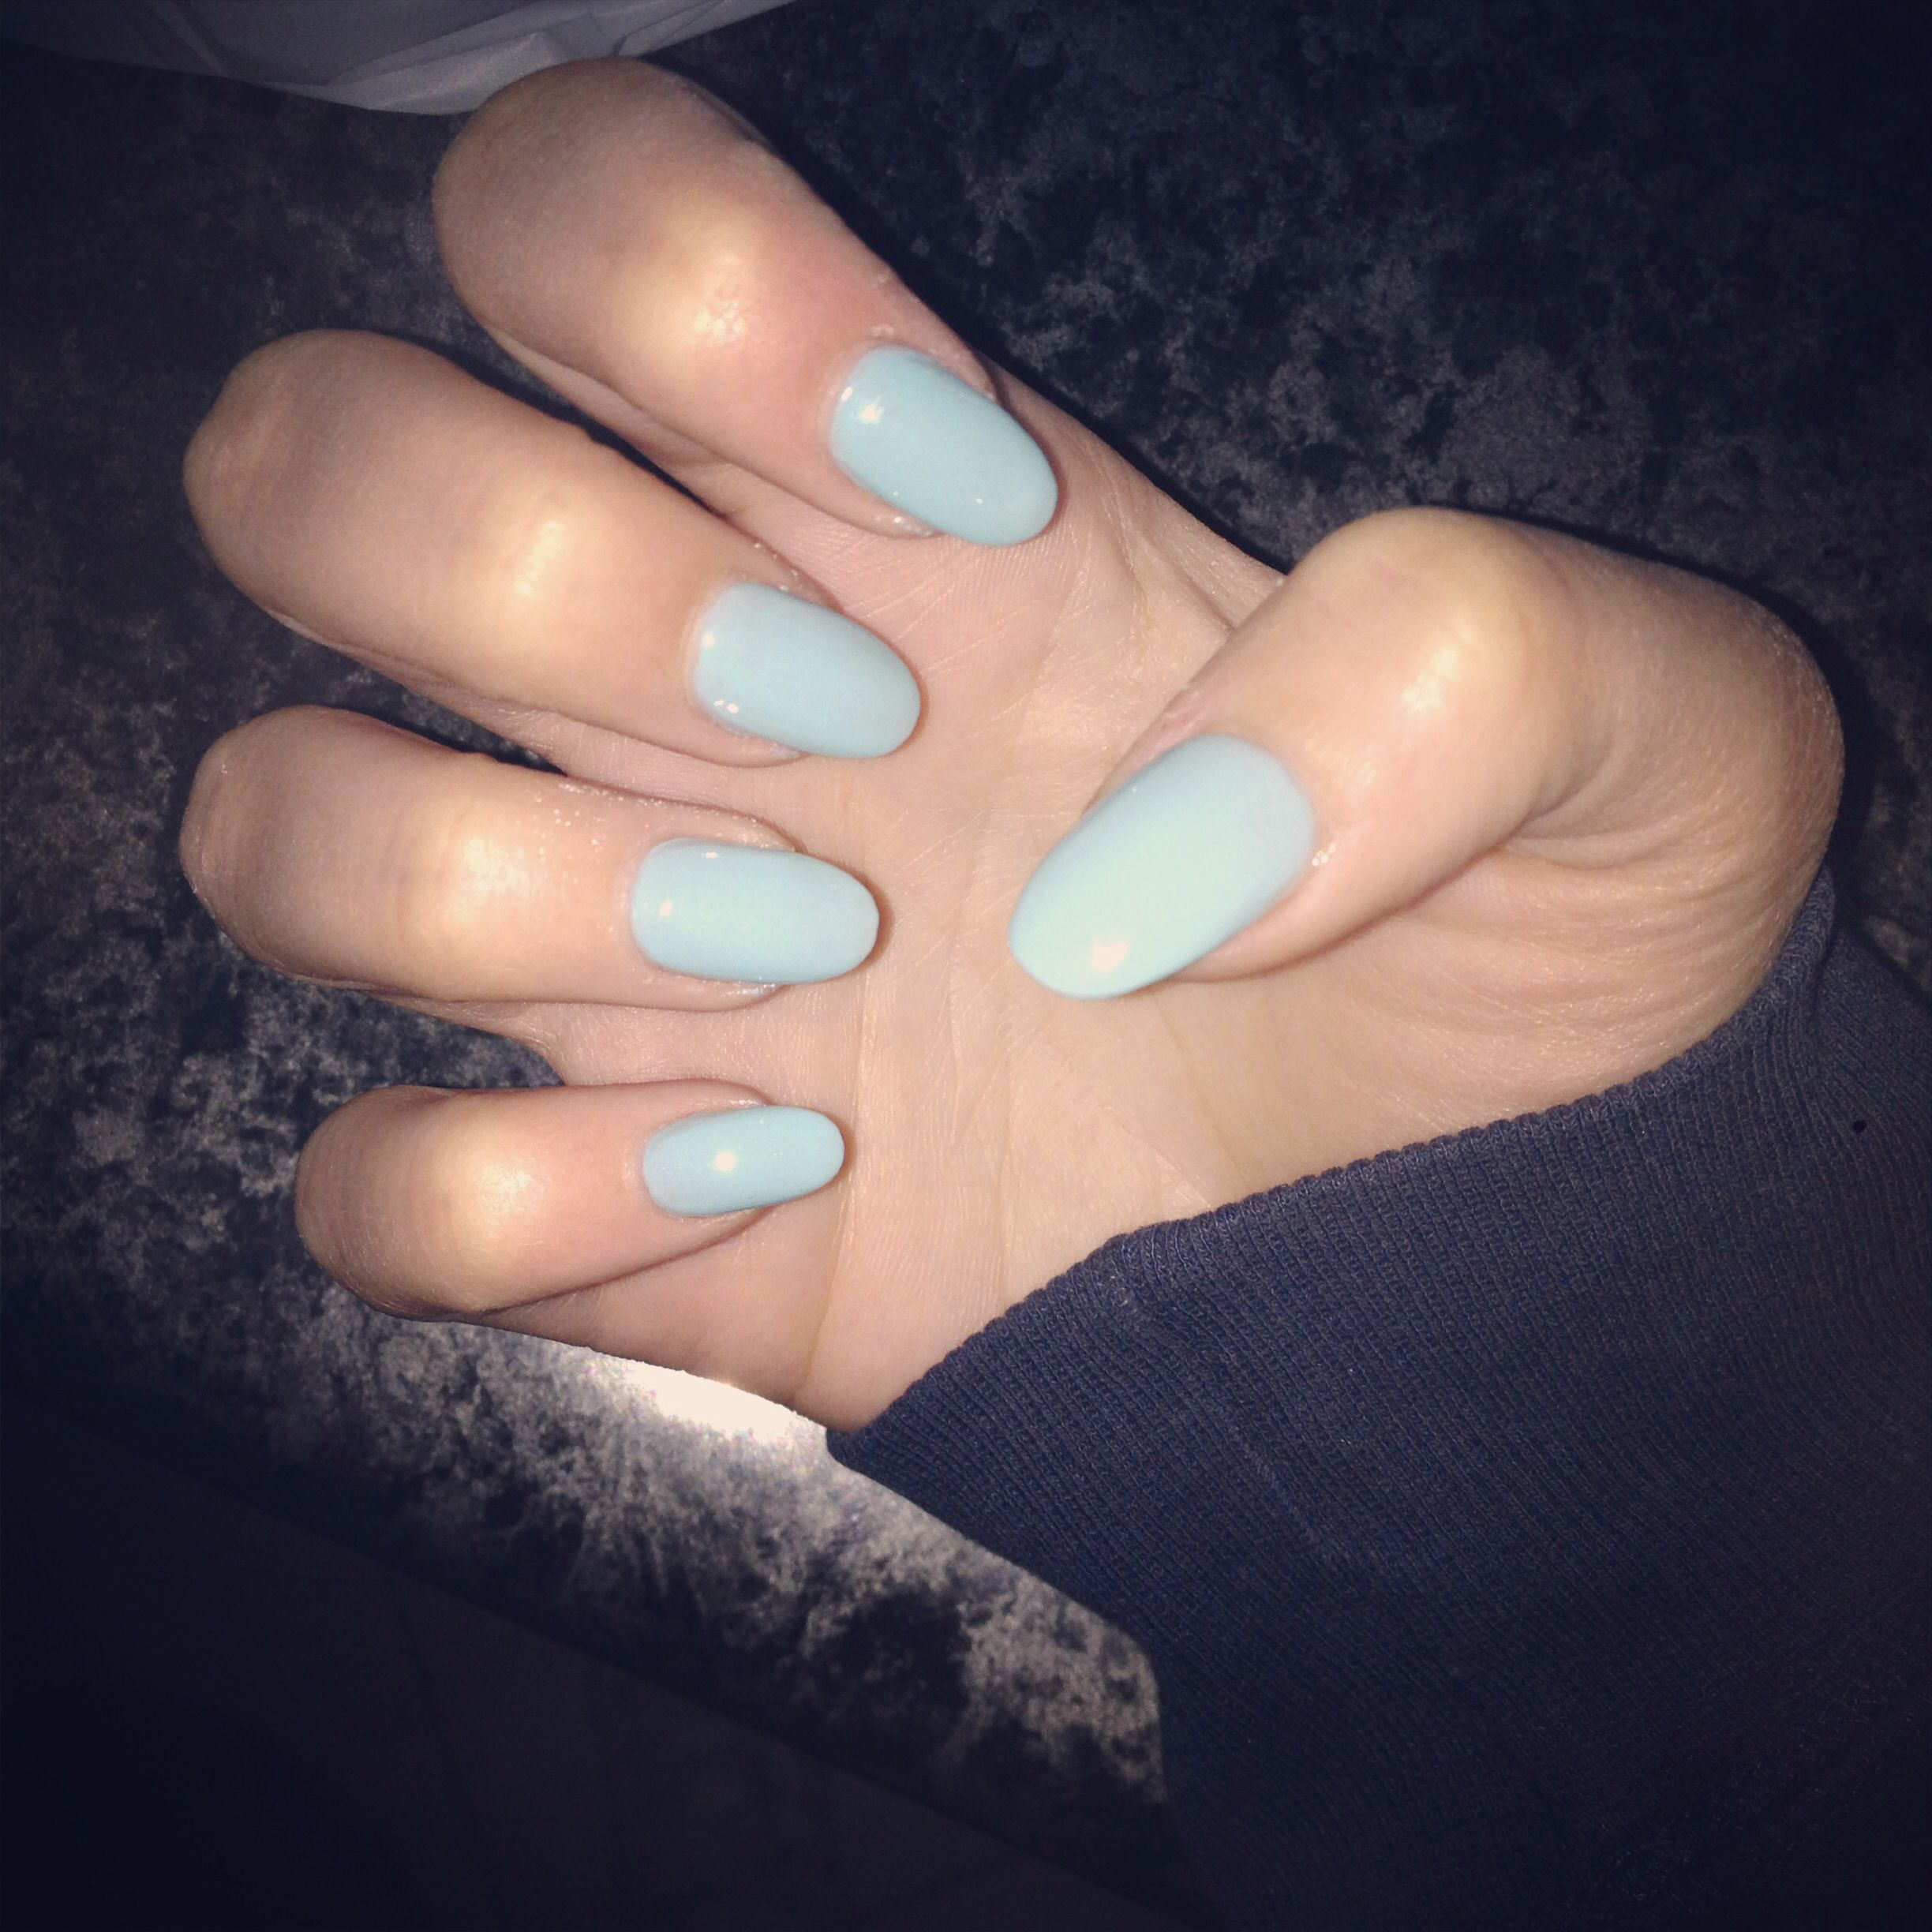 Light Blue Nails Oval Shape Blue Nail Designs Light Blue Nails Blue Glitter Nails